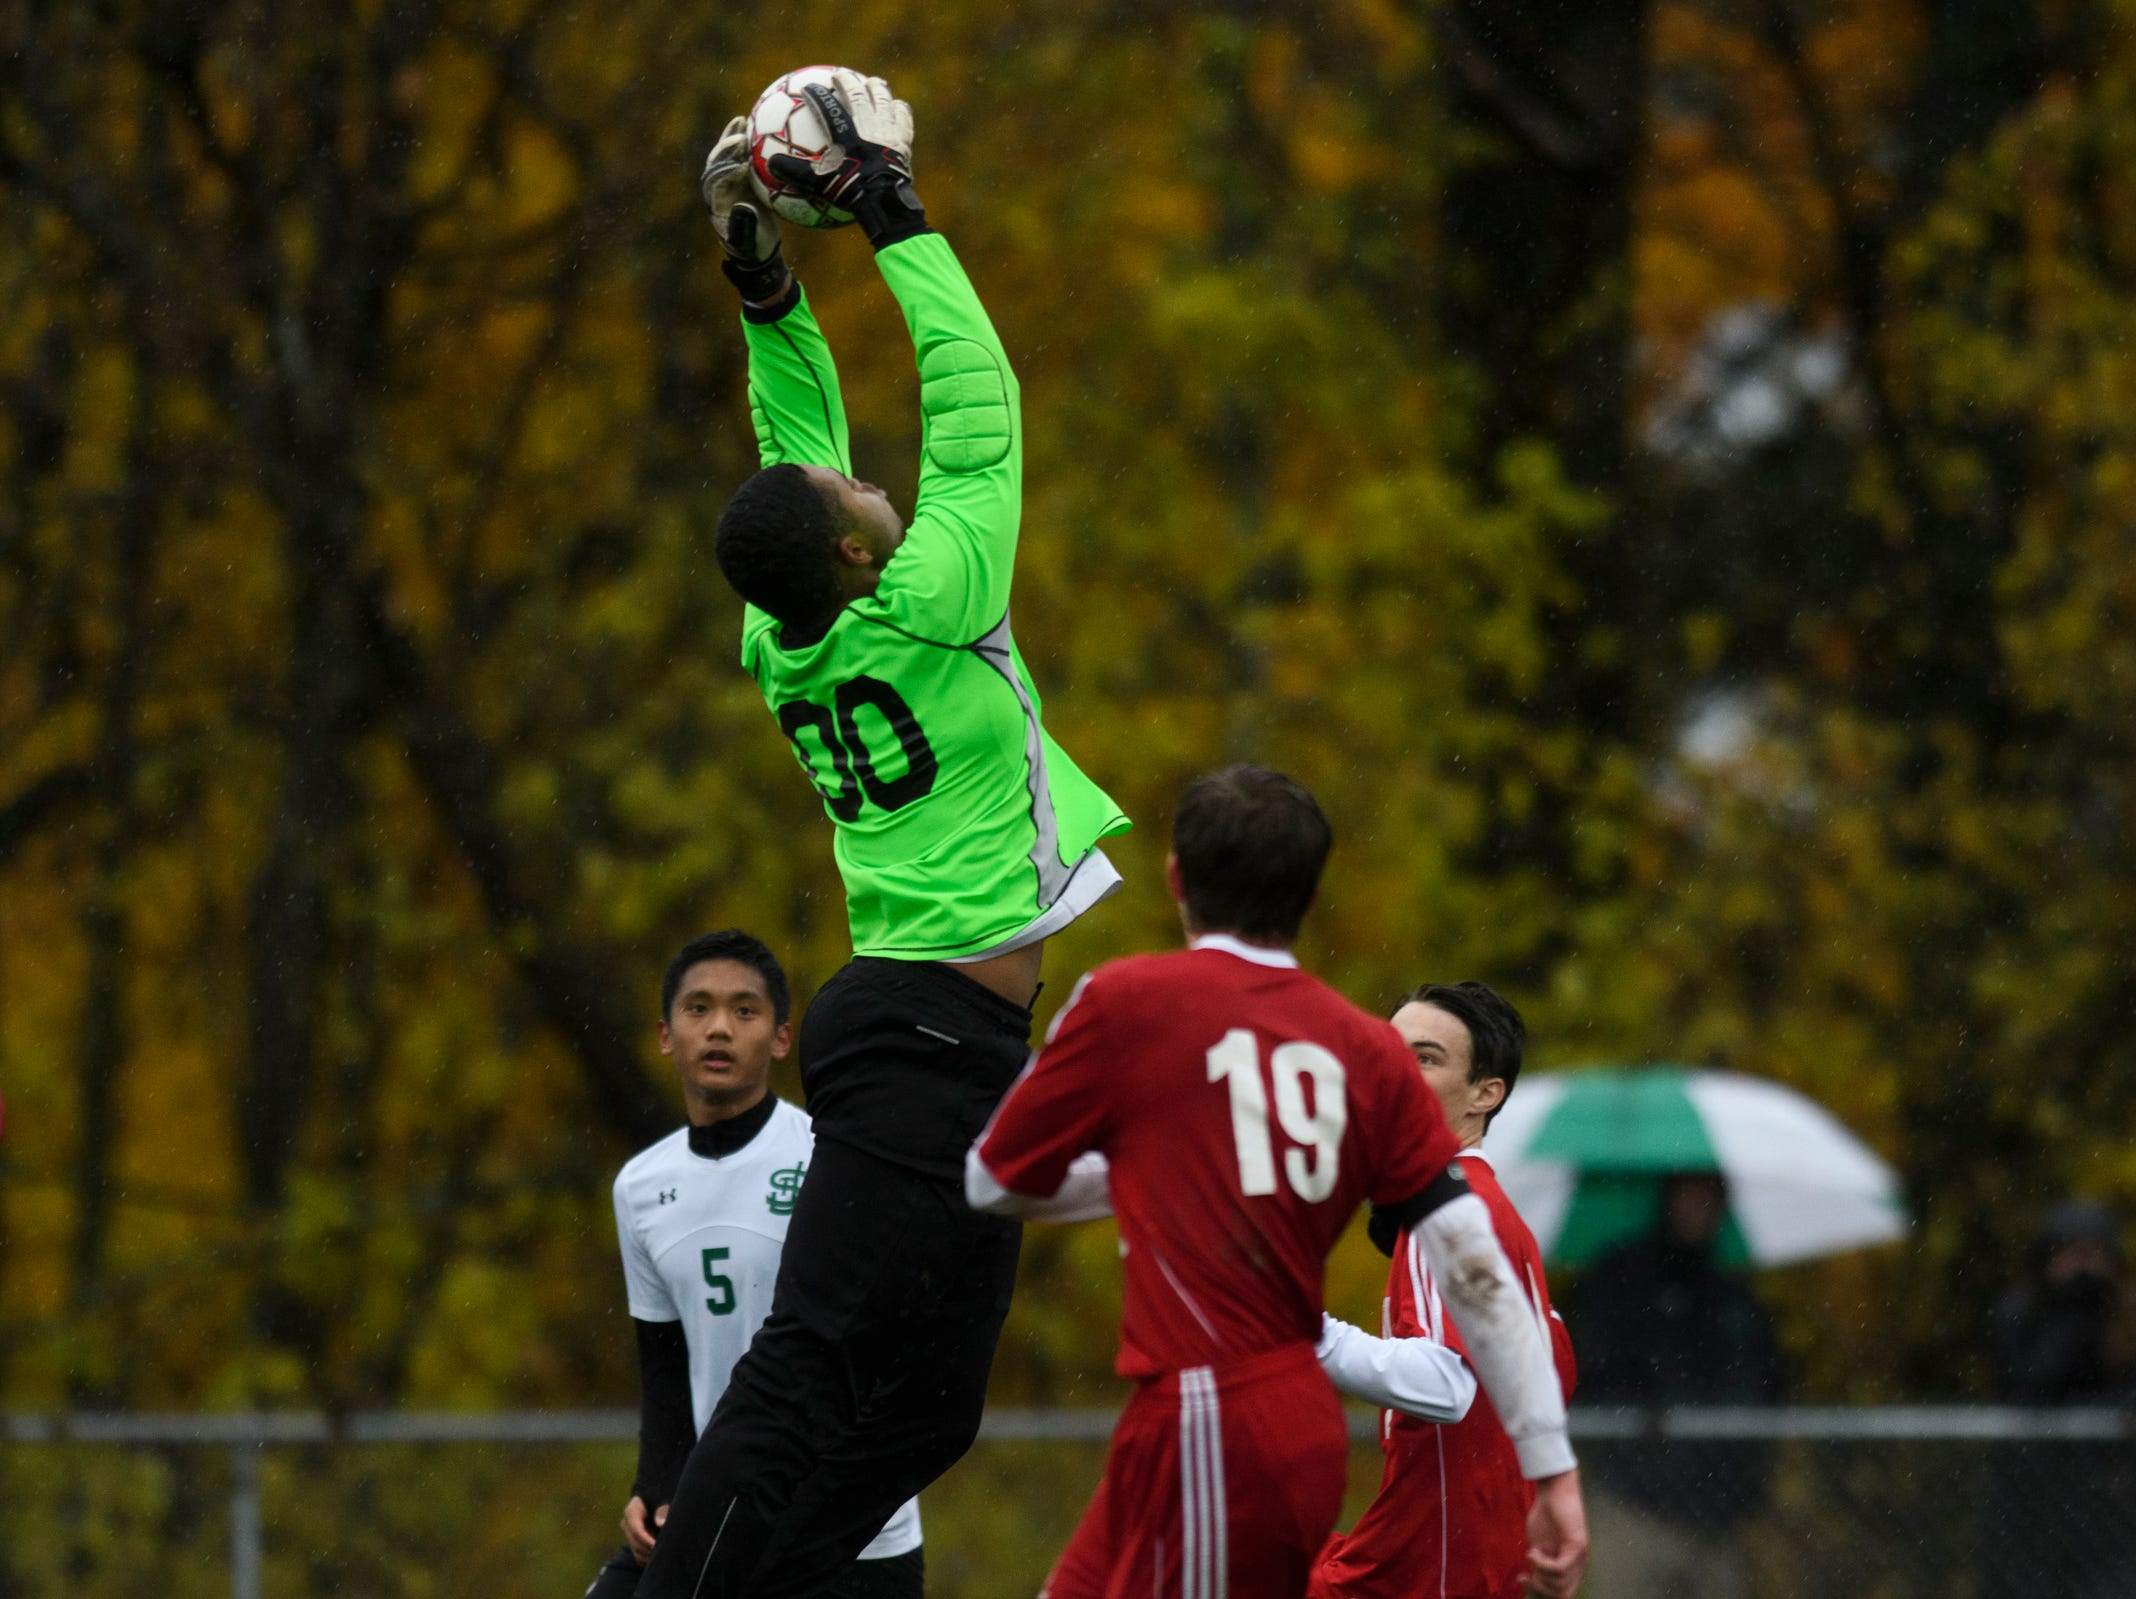 St. Johnsbury goalie Asom Hayman-Jones (00) leaps to make a save during the Division I boys soccer championship game between the St. Johnsbury Hilltoppers and the Champlain Valley Union Redhawks at Buck Hard Field on Saturday morning November 3, 2018 in Burlington.